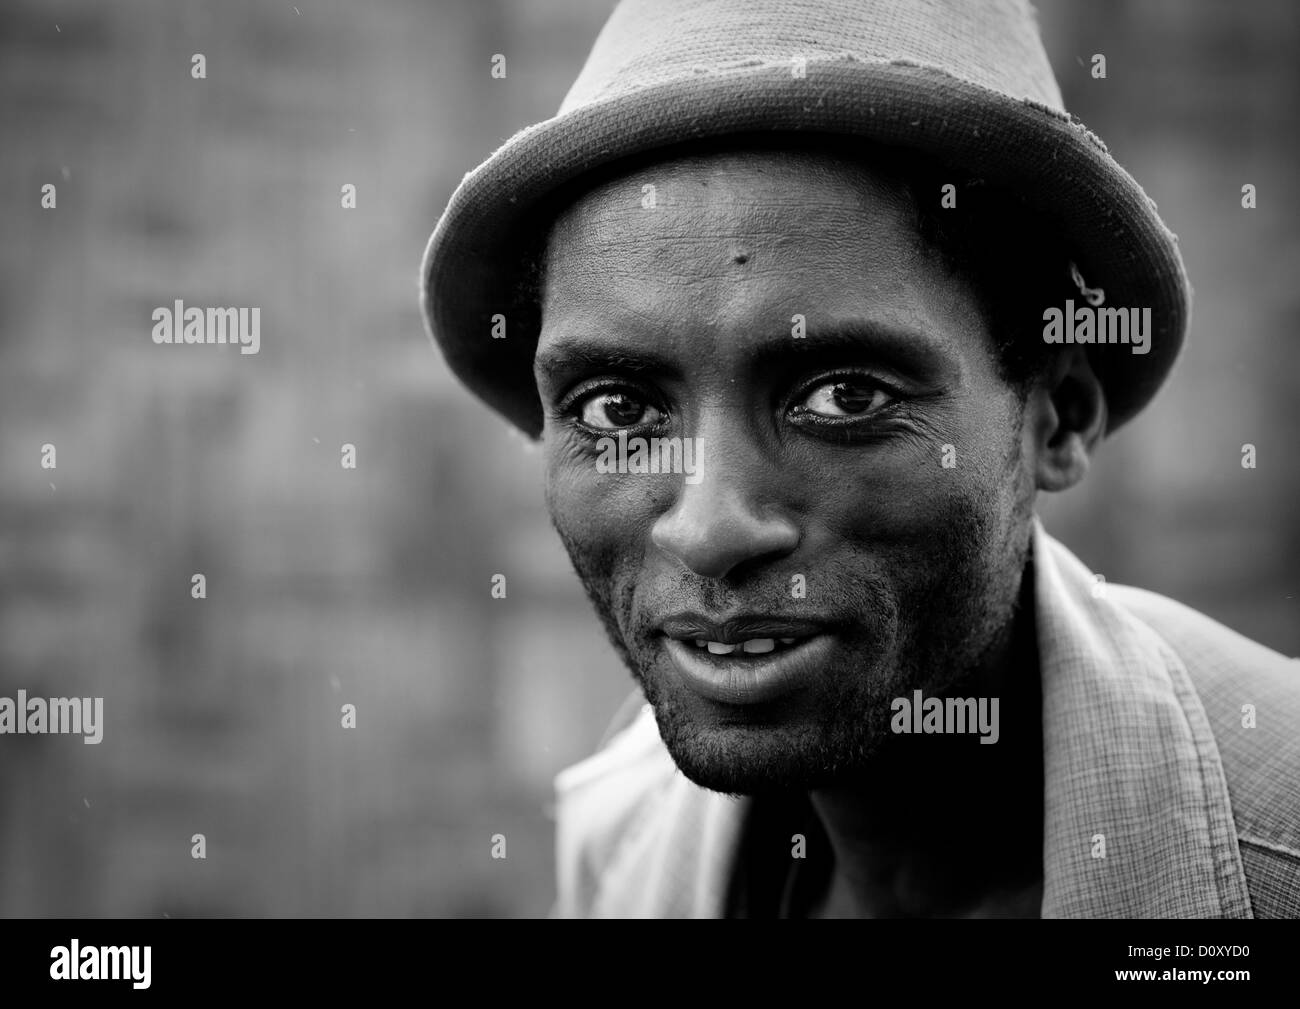 Black And White Portrait Of A Young Dorze Tribe Man With Hat, Chencha, Ethiopia - Stock Image